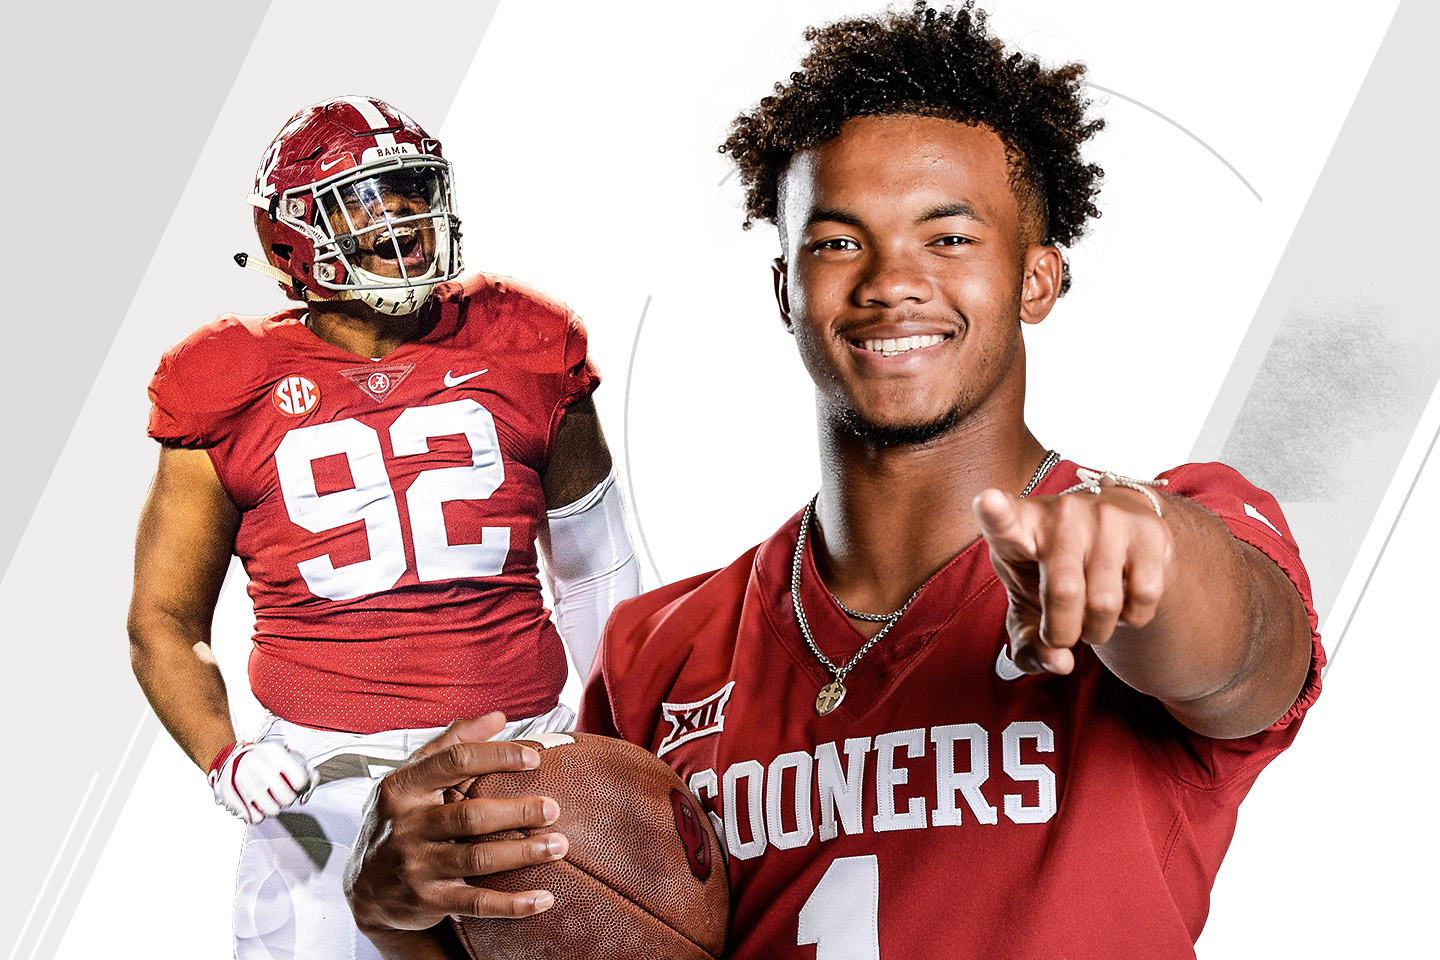 Kyler Murray and Quinnen Williams lead this year's college football All-America team.